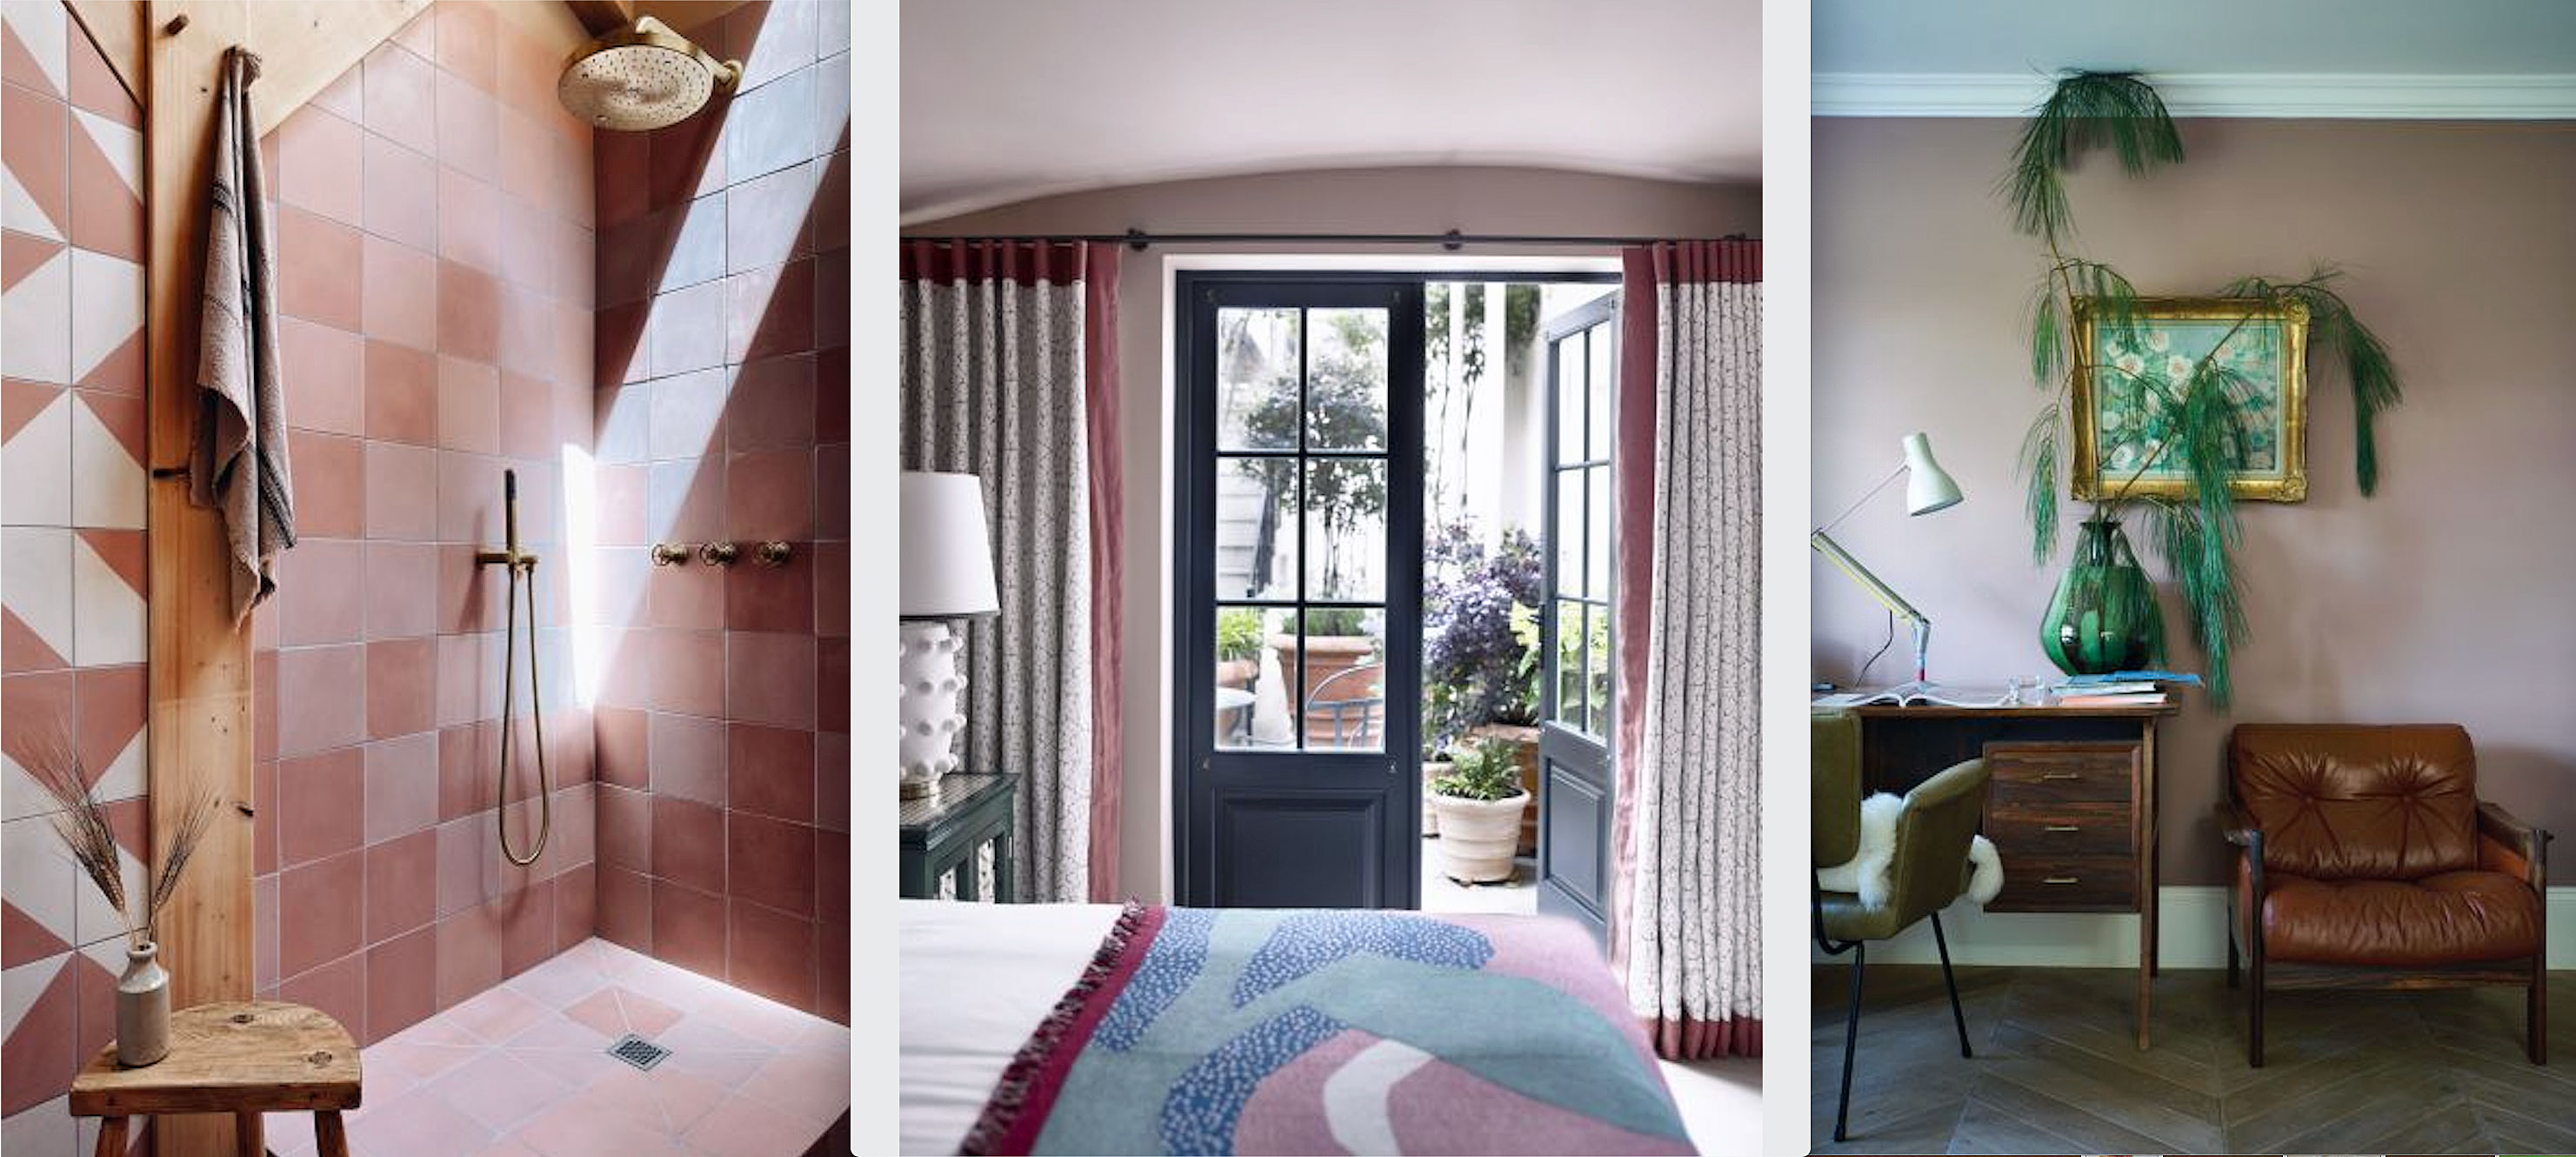 Pink Room Ideas Ideal For Decorating With Homes Gardens